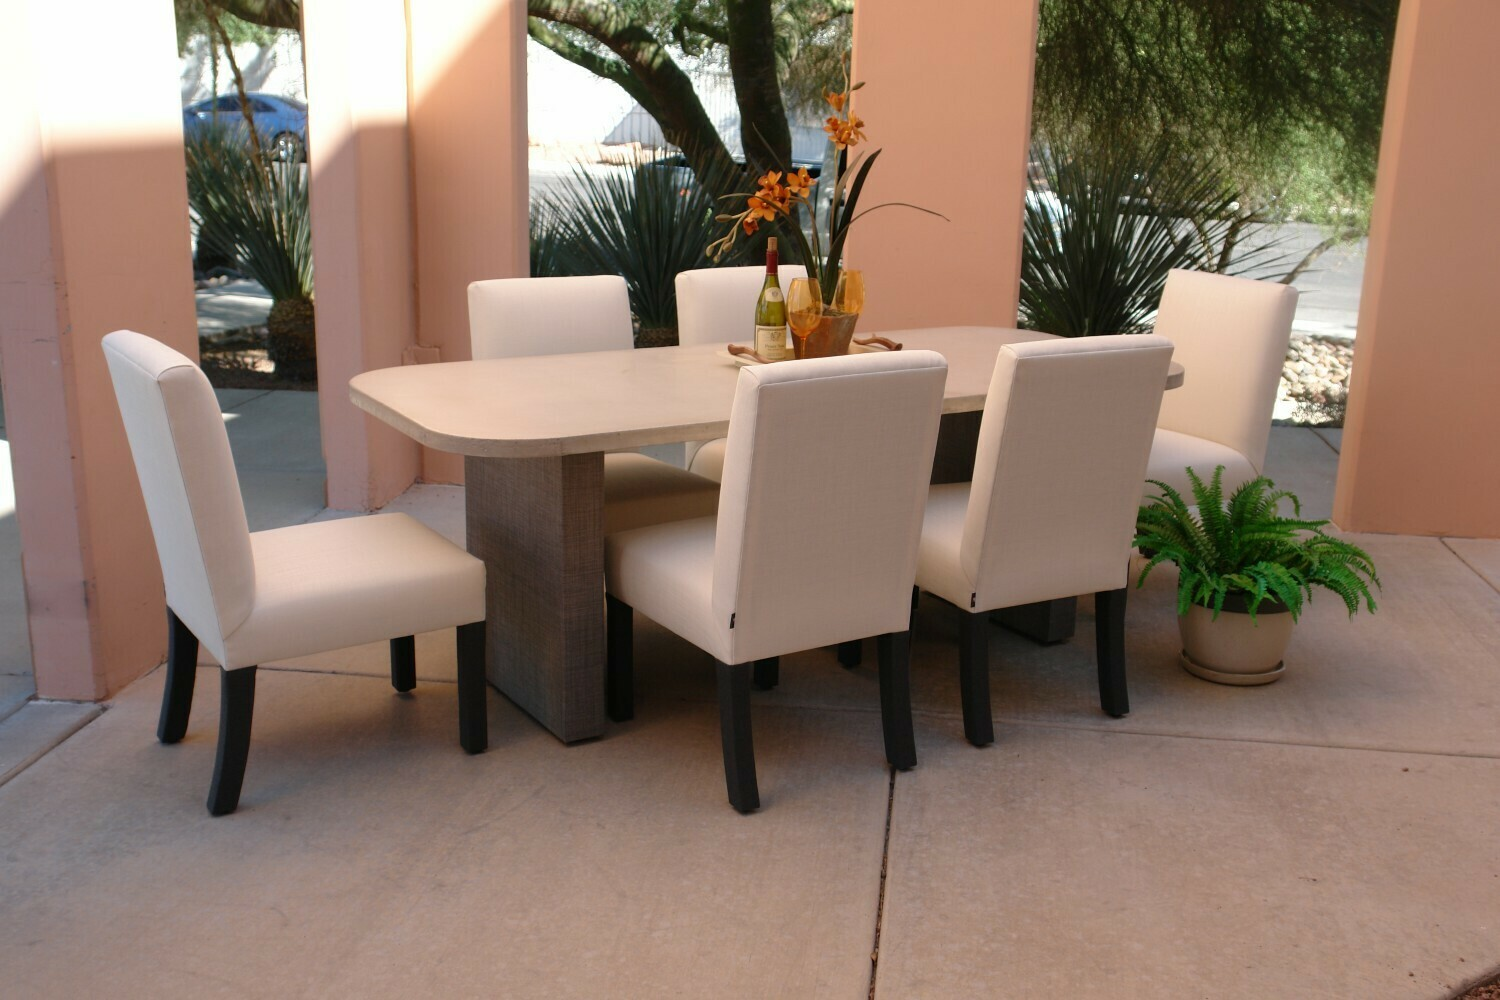 Resort Style 7 Piece Dining Set-1 7' Concrete Table and 6 Dining Chairs